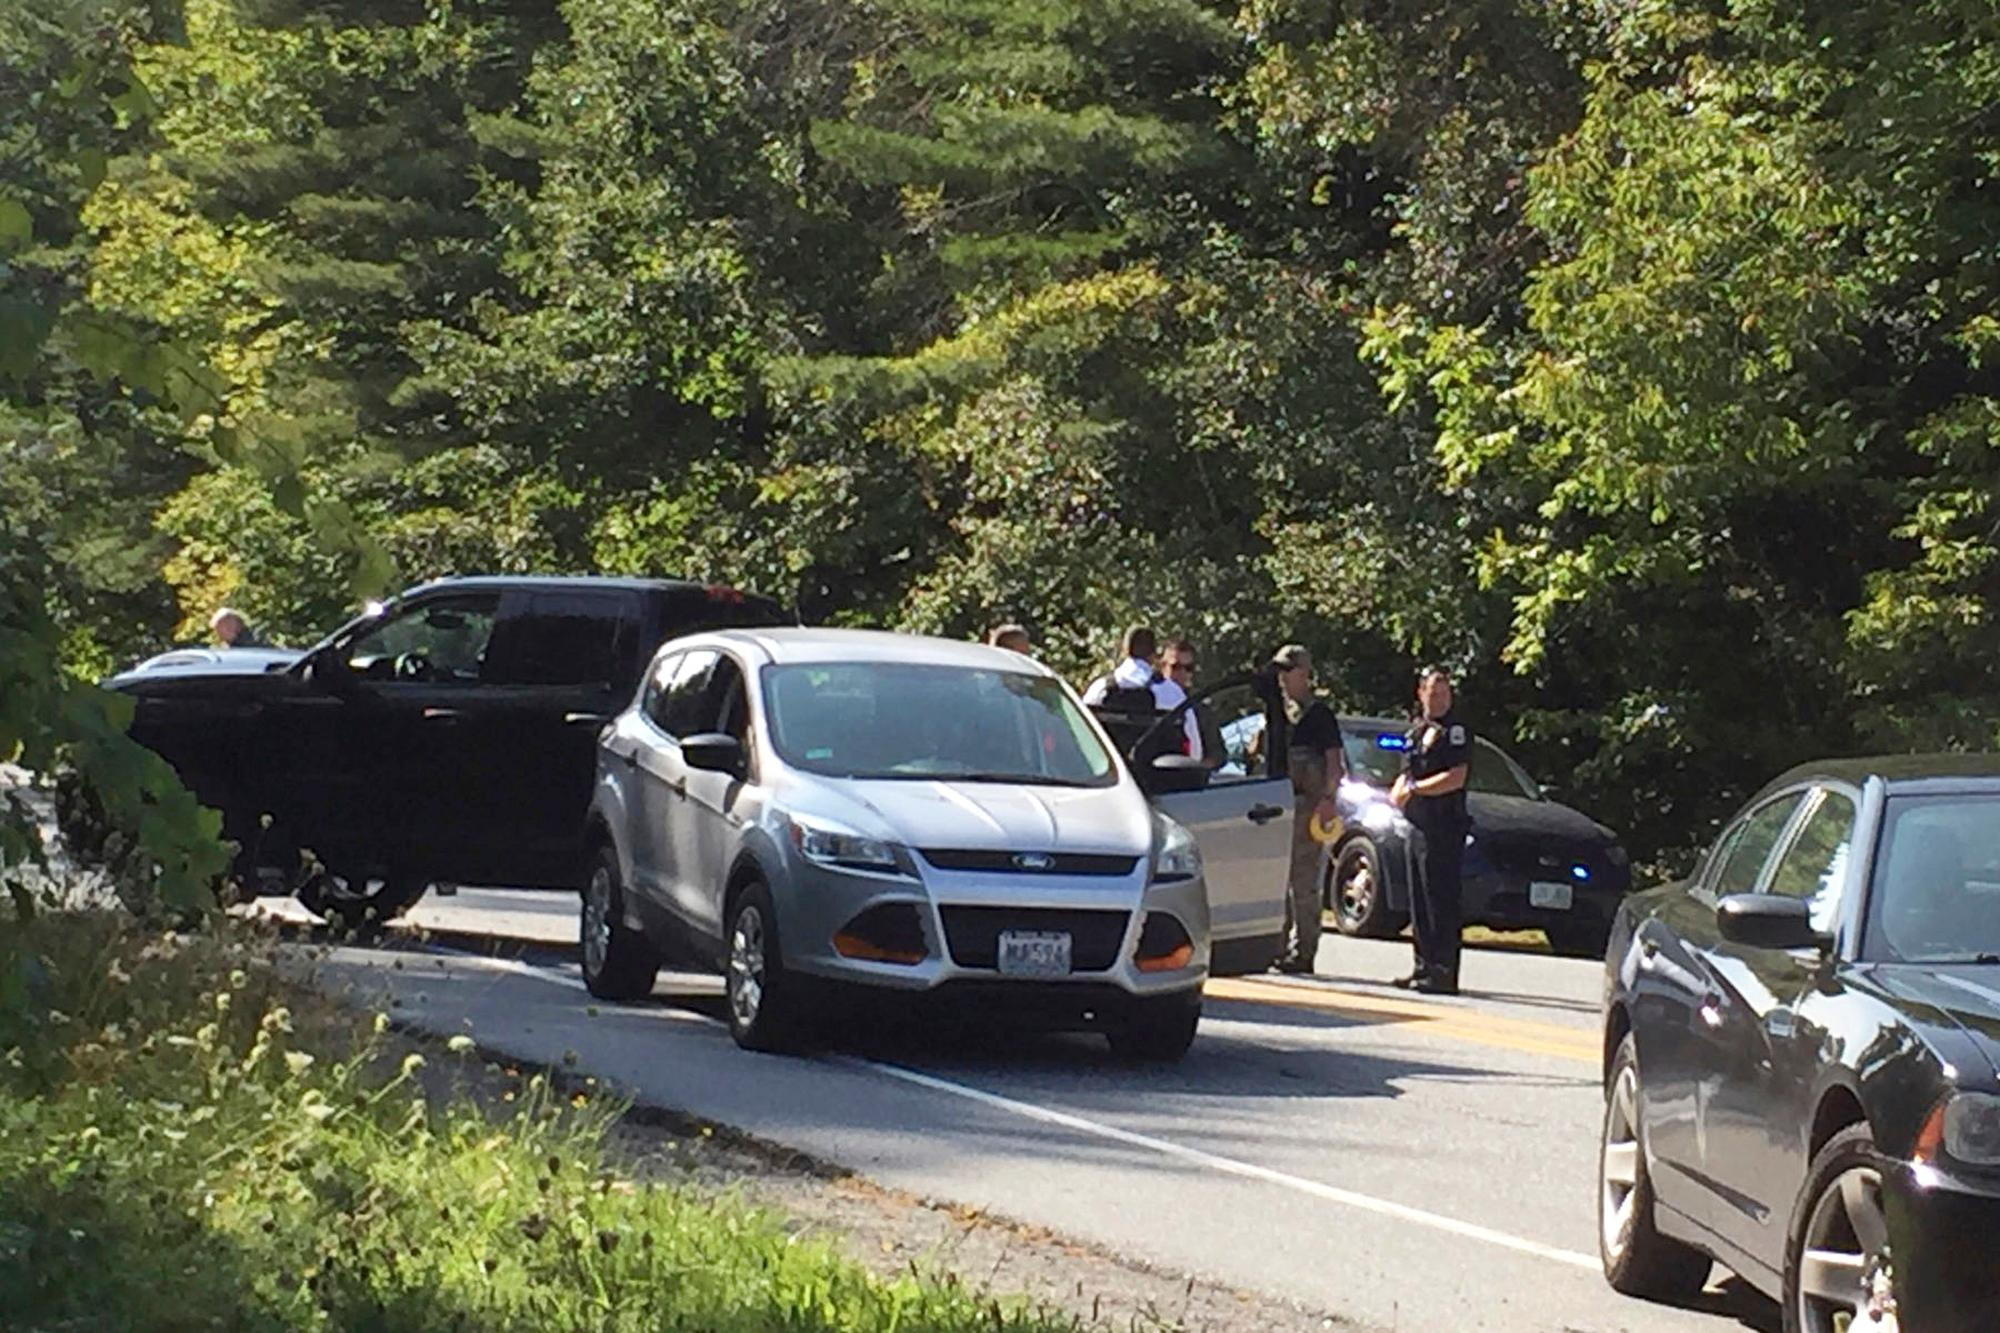 A suspect in an active shooter incident at Dartmouth-Hitchcock Medical Center was pulled from a grey Ford Escape at the intersection of LaHaye Drive and Mount Support Road in Lebanon, N.H., on Tuesday, Sept. 12, 2017. The Lebanon Department of Public Safety confirmed that someone was taken into custody shortly before 3 p.m. following reports of an active shooter at Dartmouth-Hitchcock Medical Center. (Jennifer Hauck/The Valley News via AP)